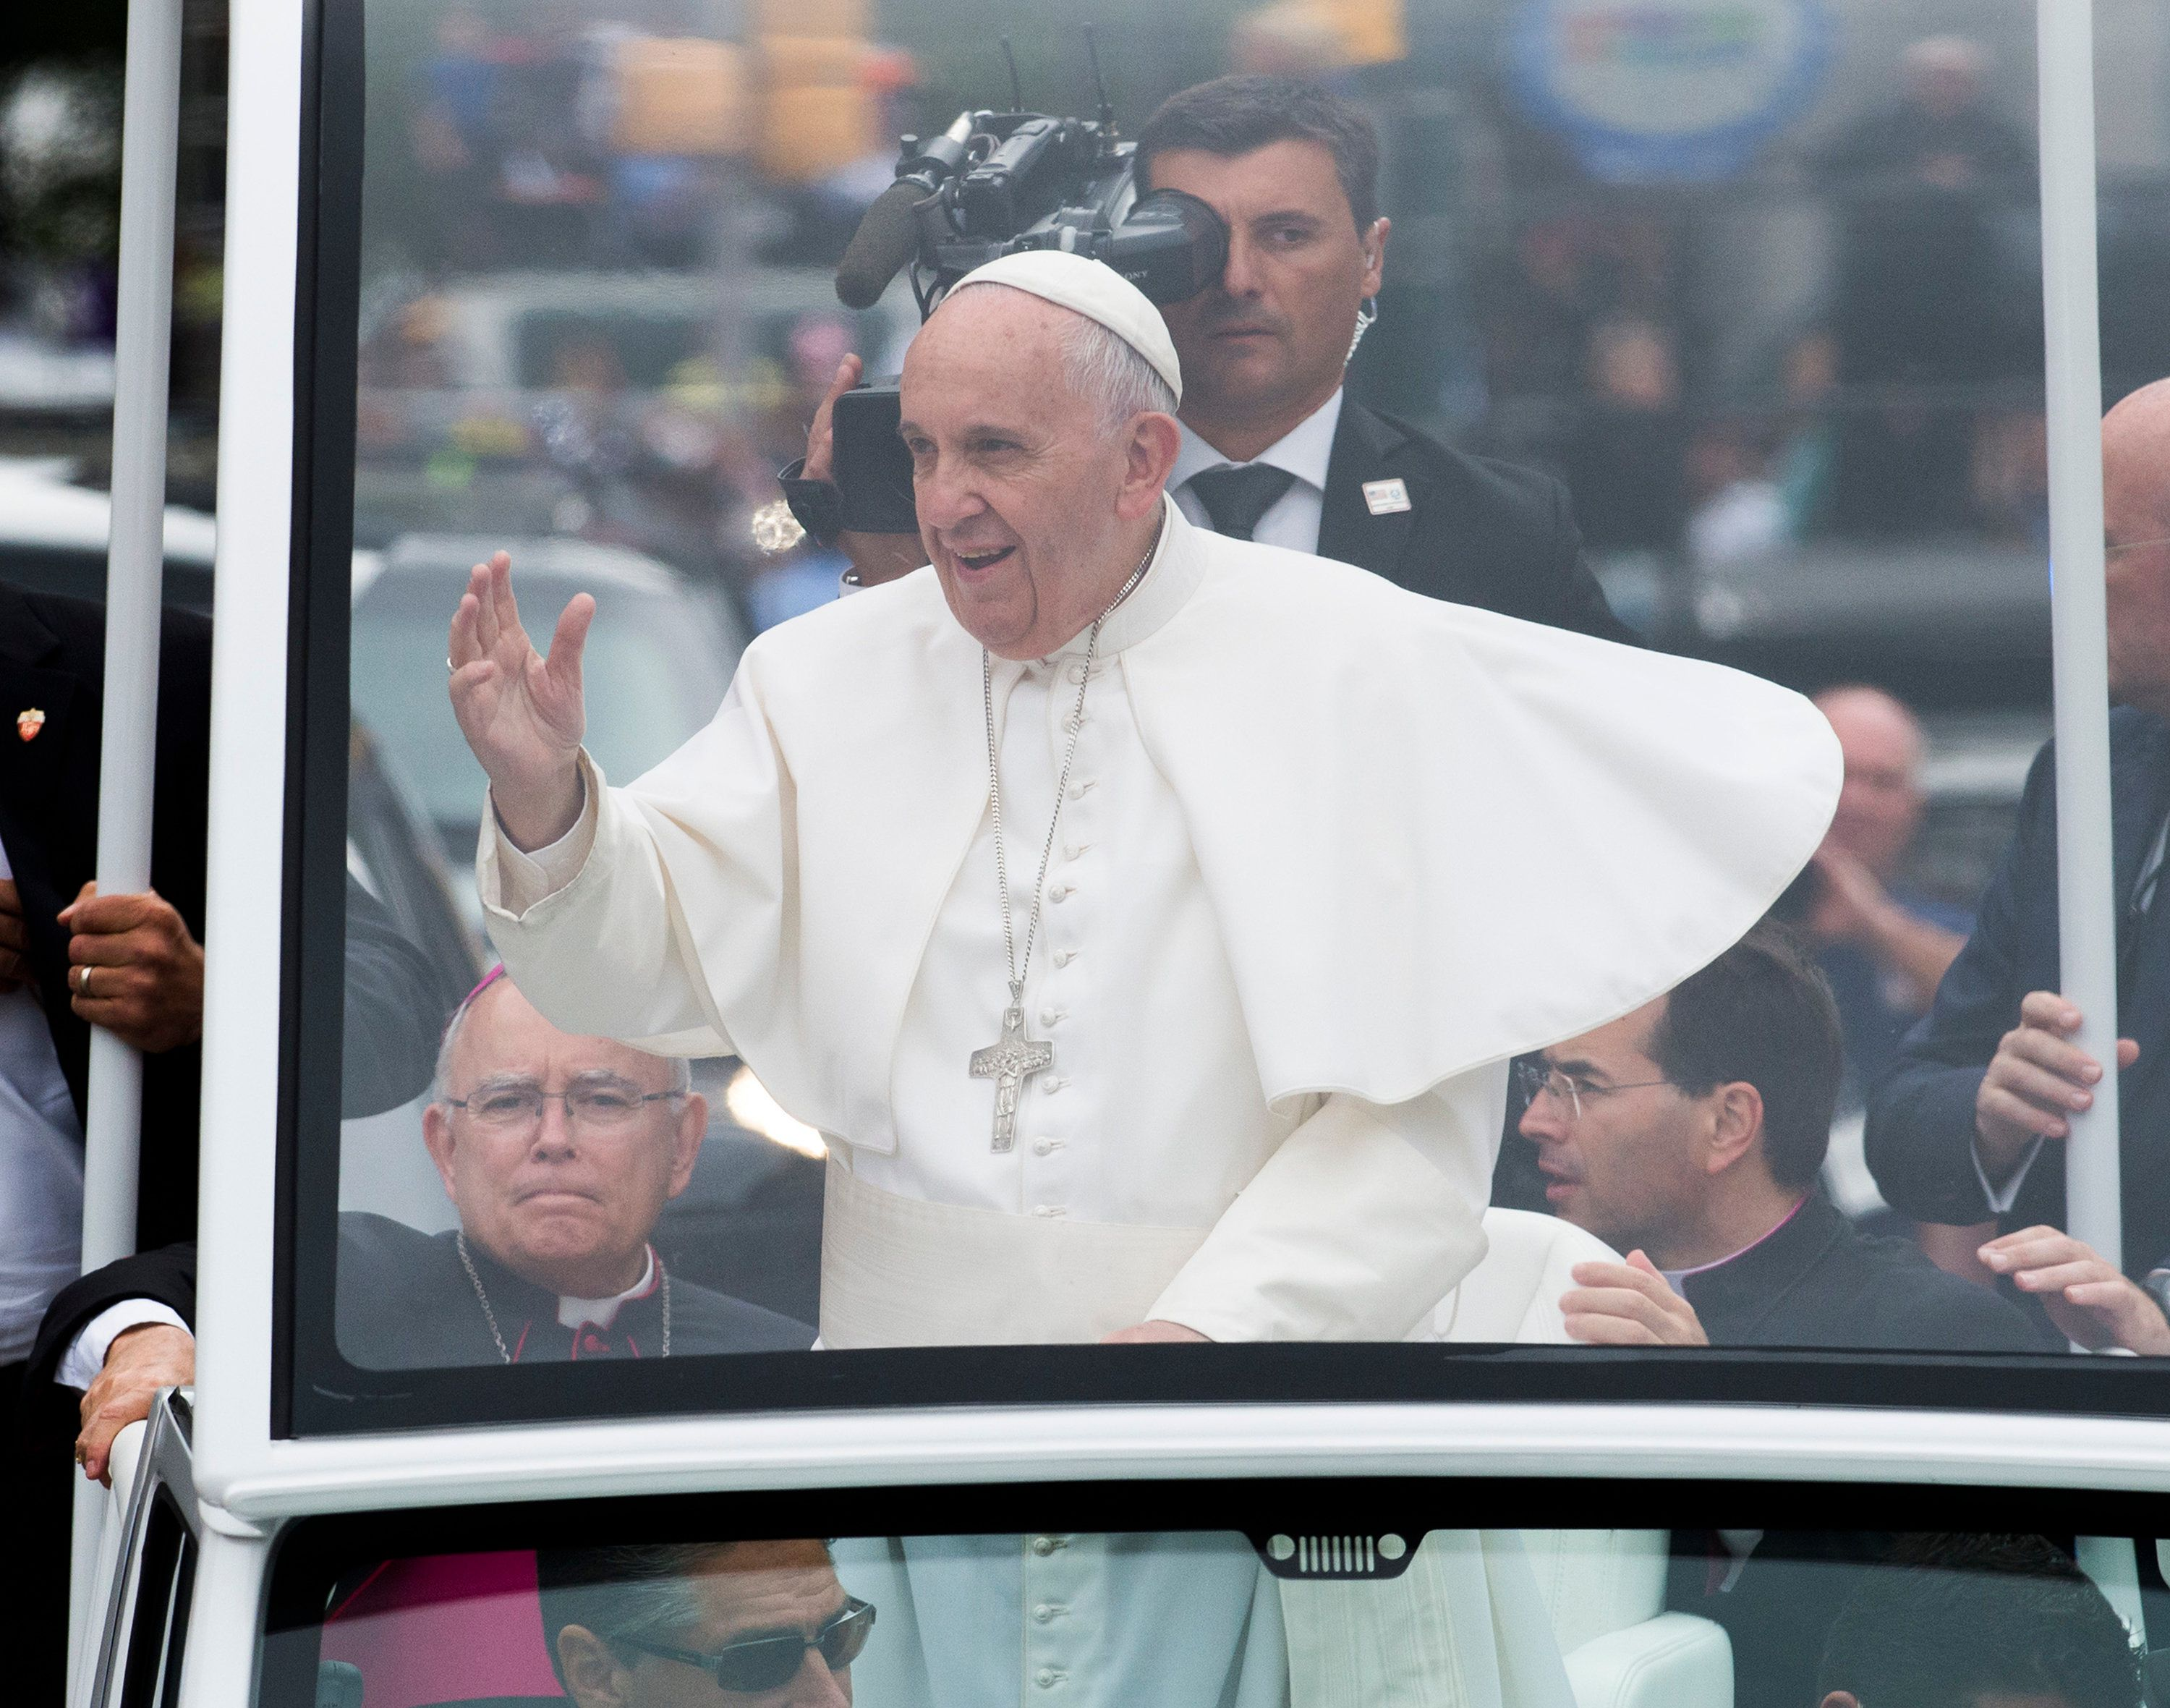 Pope Francis waves to pilgrims on the Benjamin Franklin Parkway in Philadelphia on Sunday, Sept. 27, 2015.